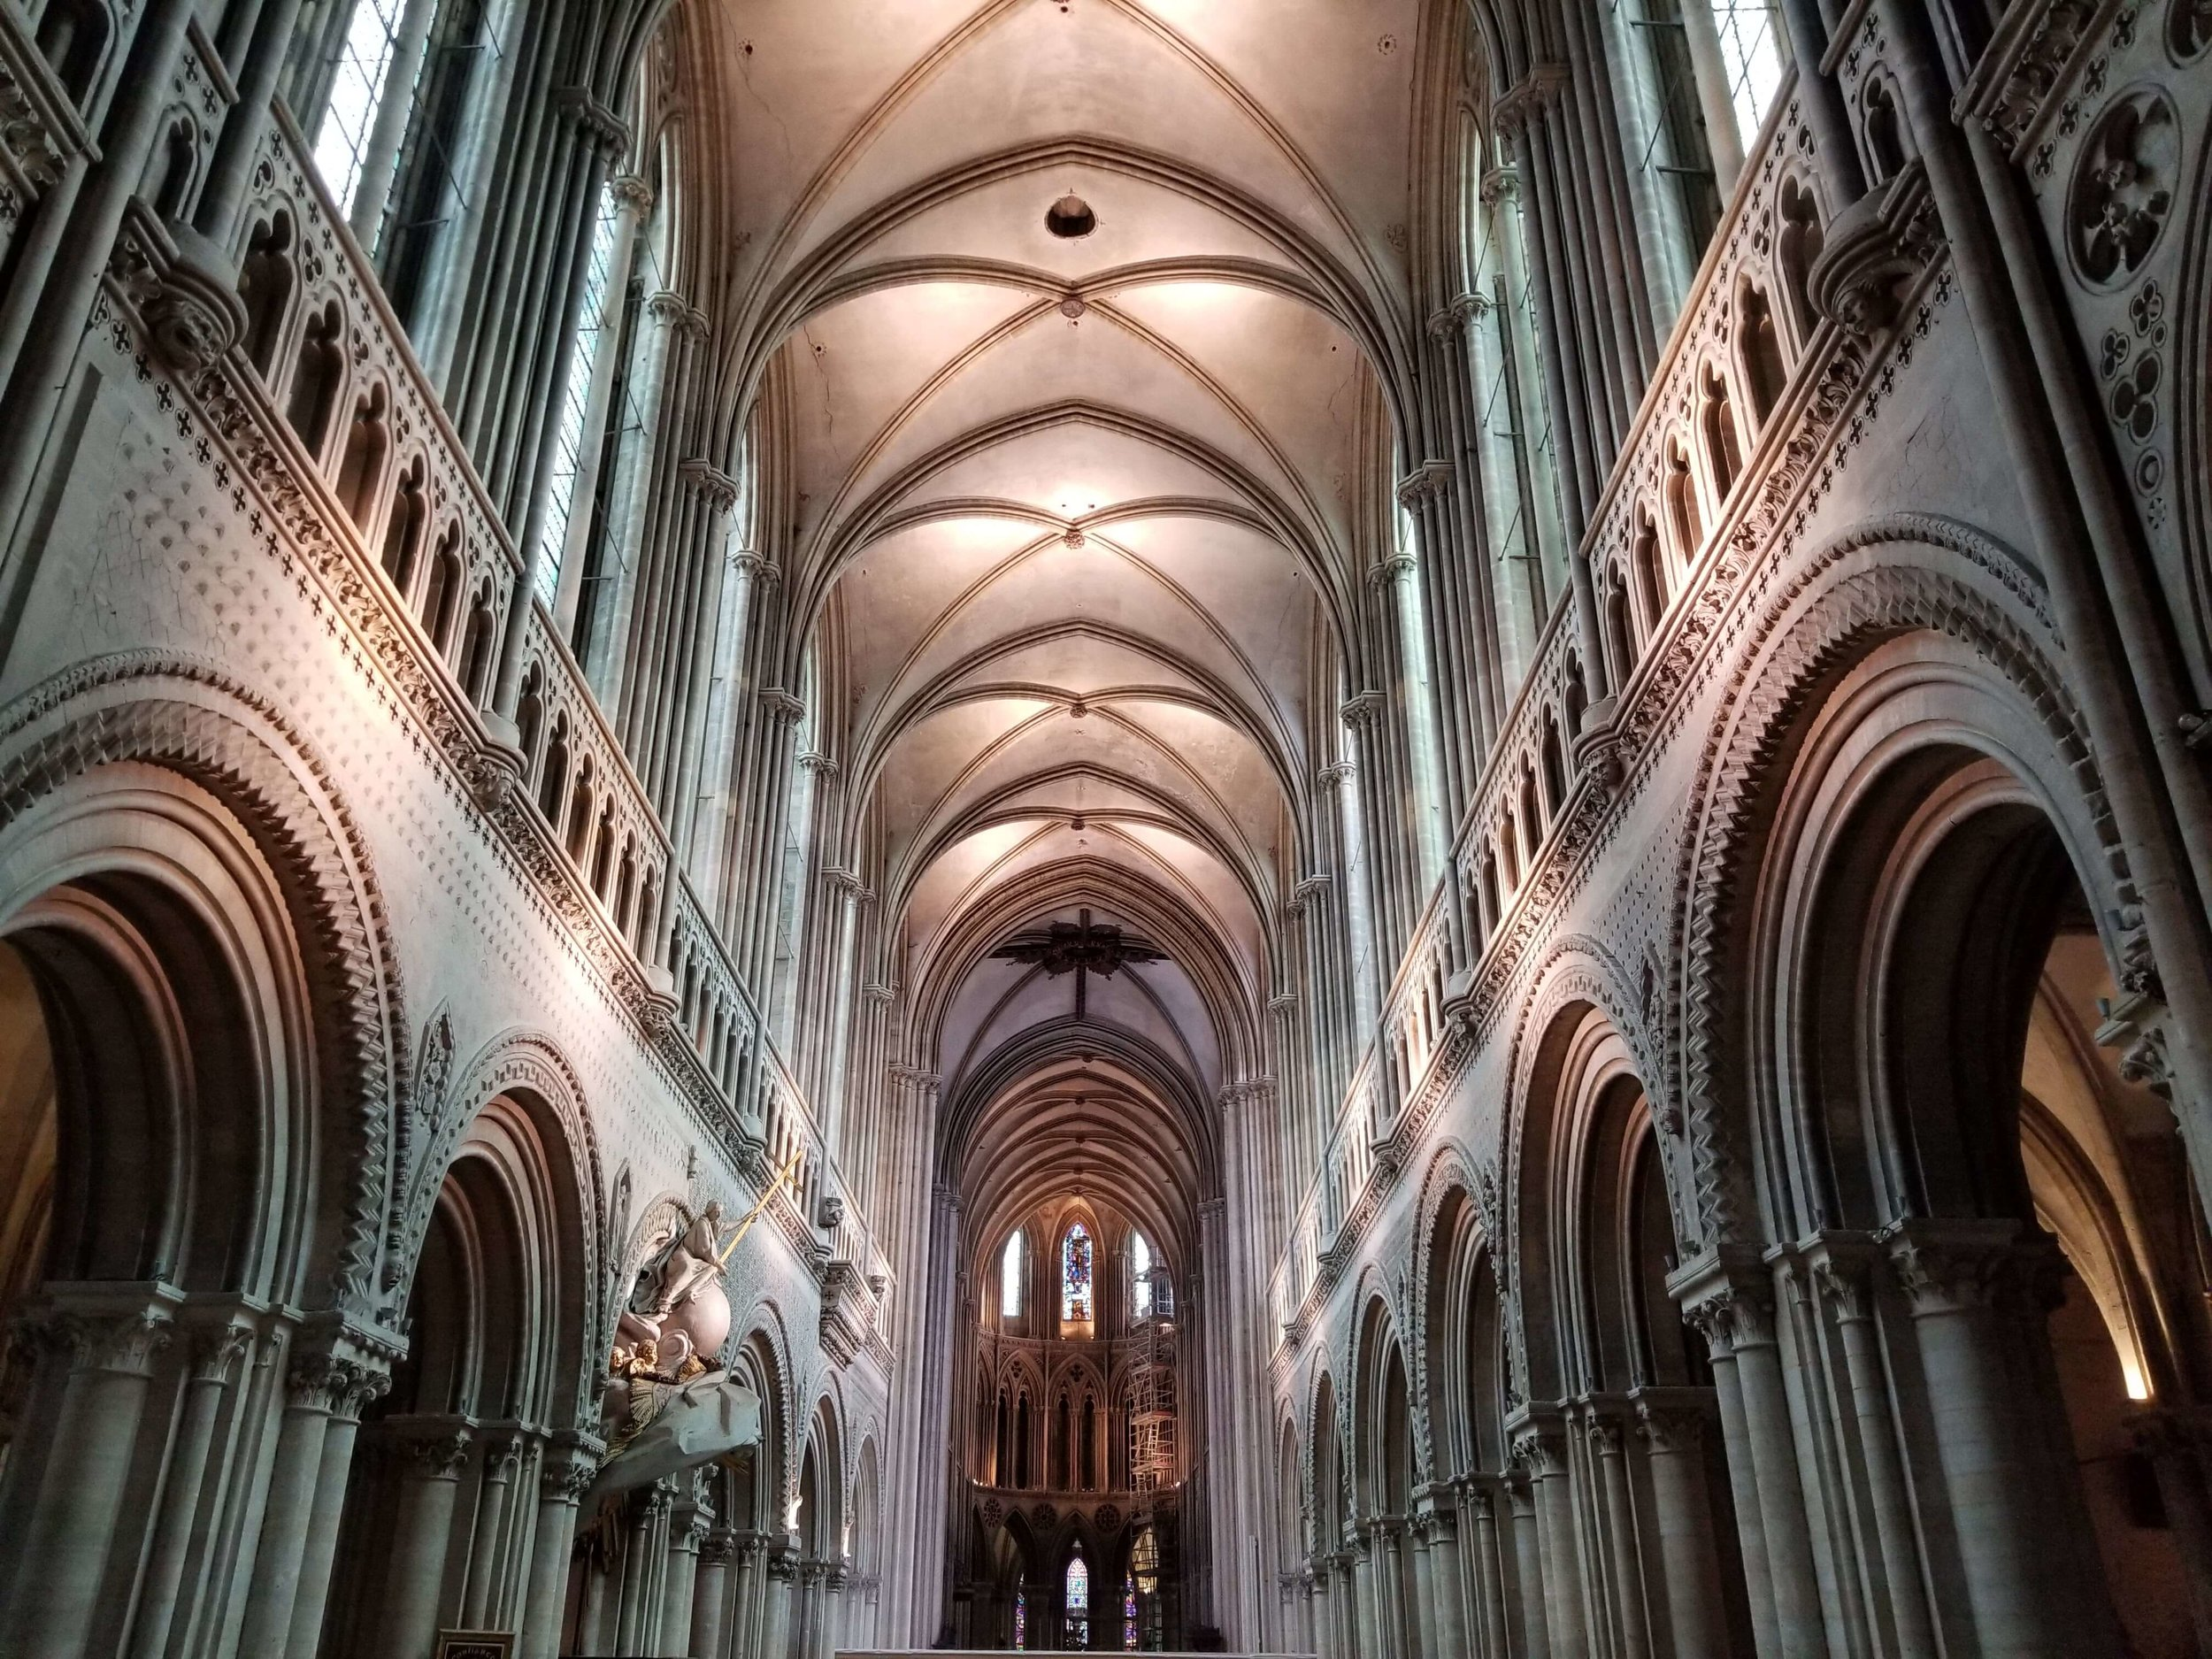 Inside Bayeux's beautiful cathedral